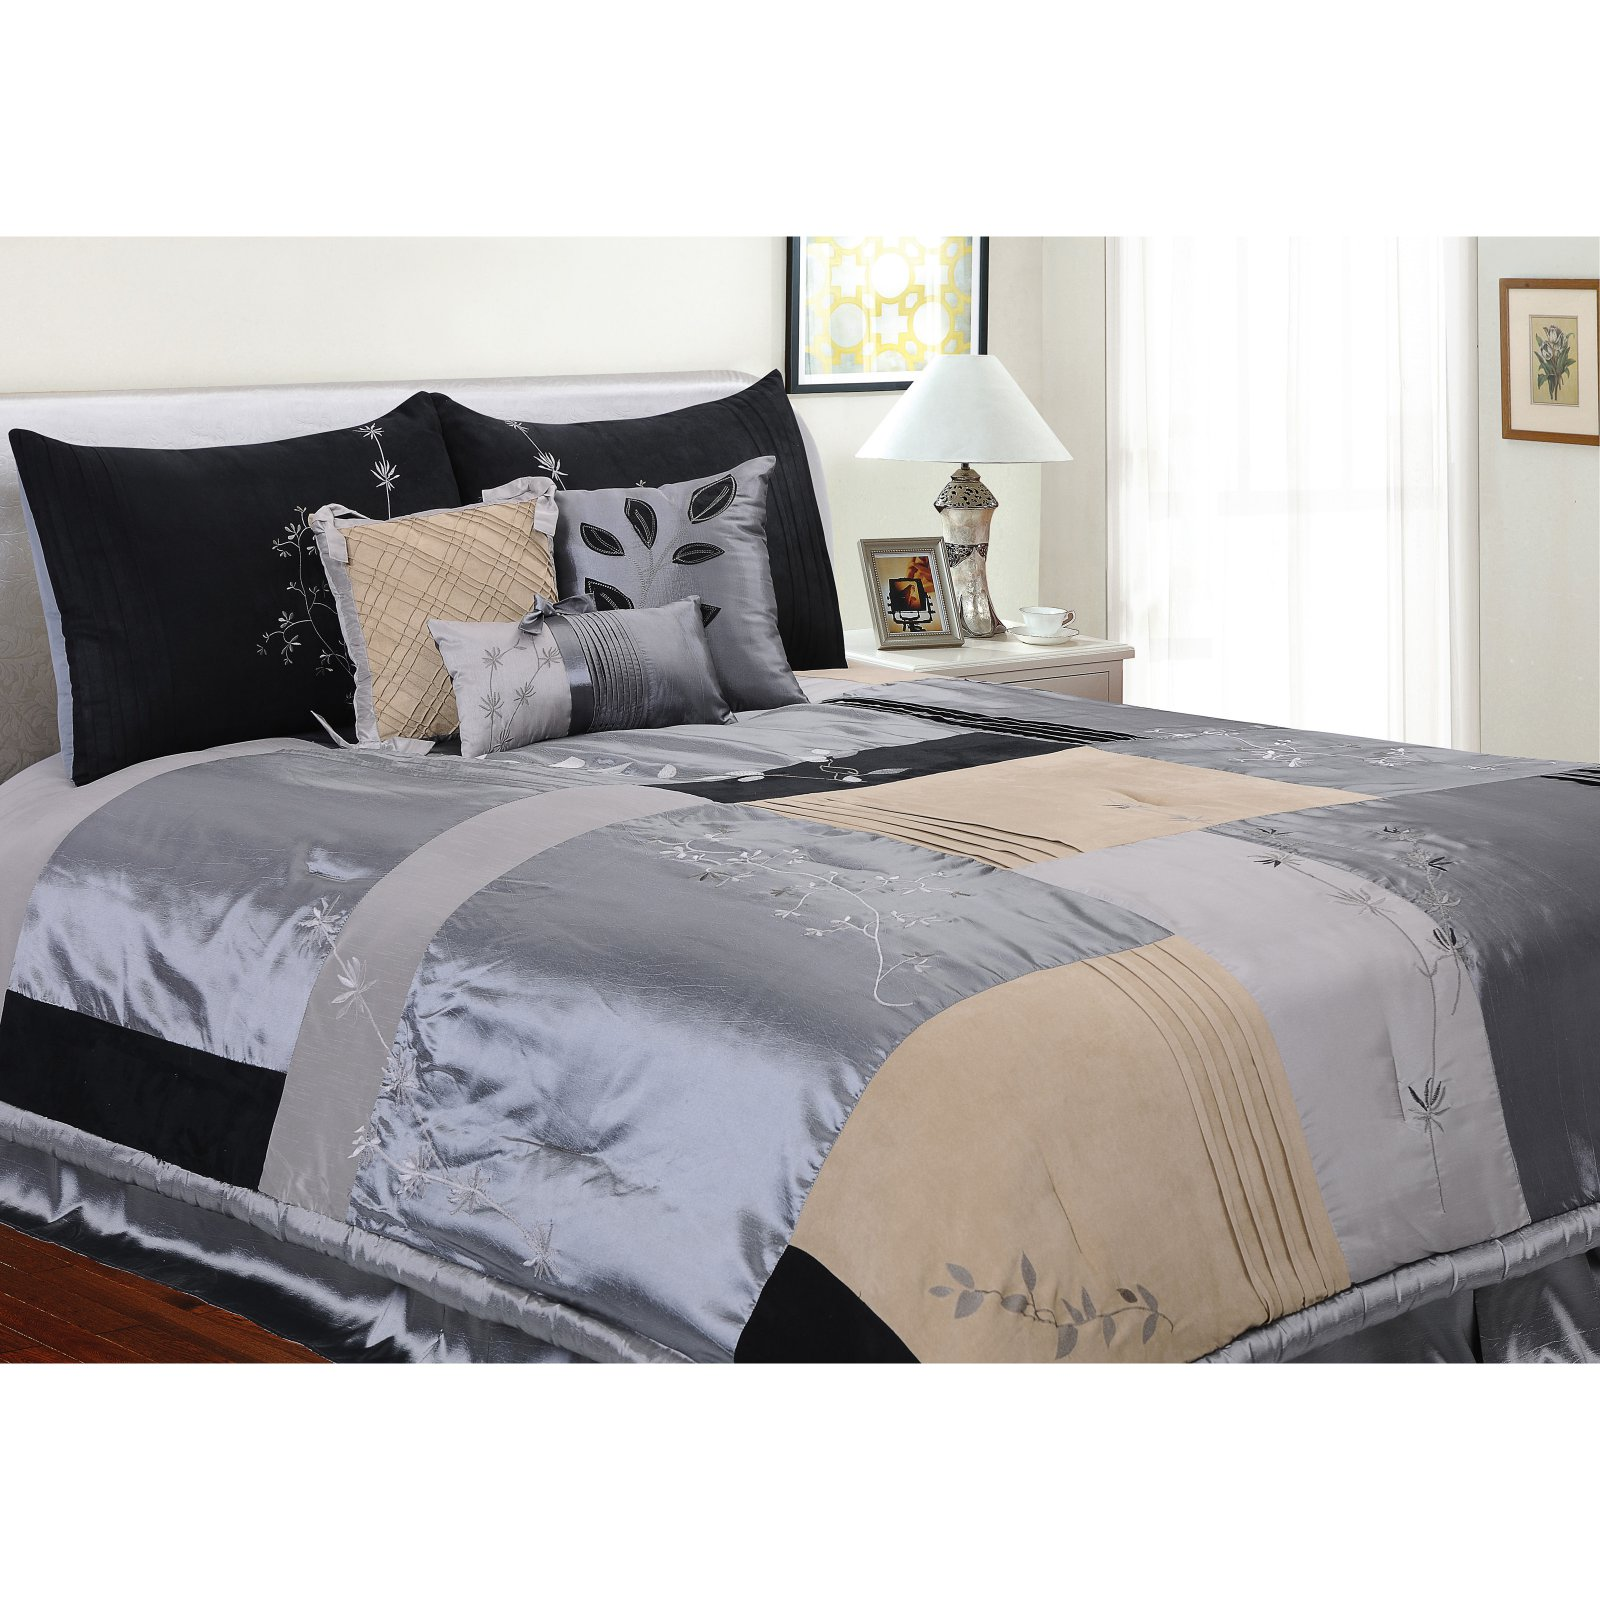 Back to Nature 6-Piece Complete Comforter Set